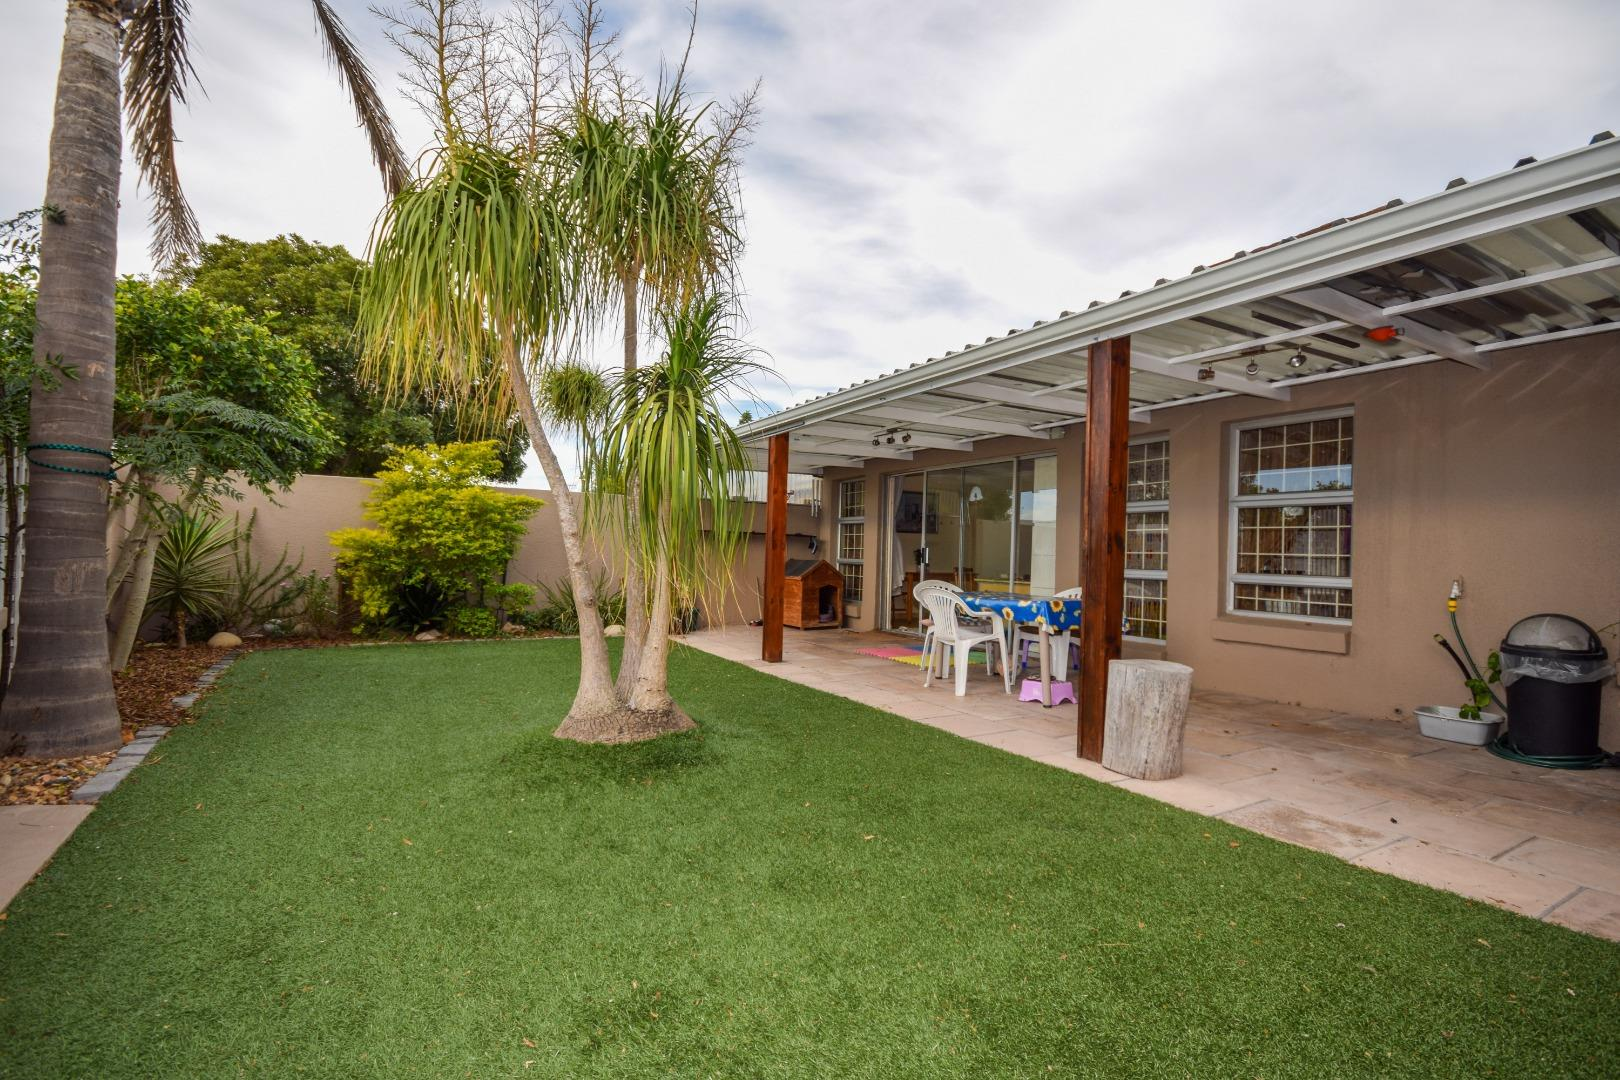 2 Bedroom Townhouse for Sale in Oakglen, Bellville - Western Cape